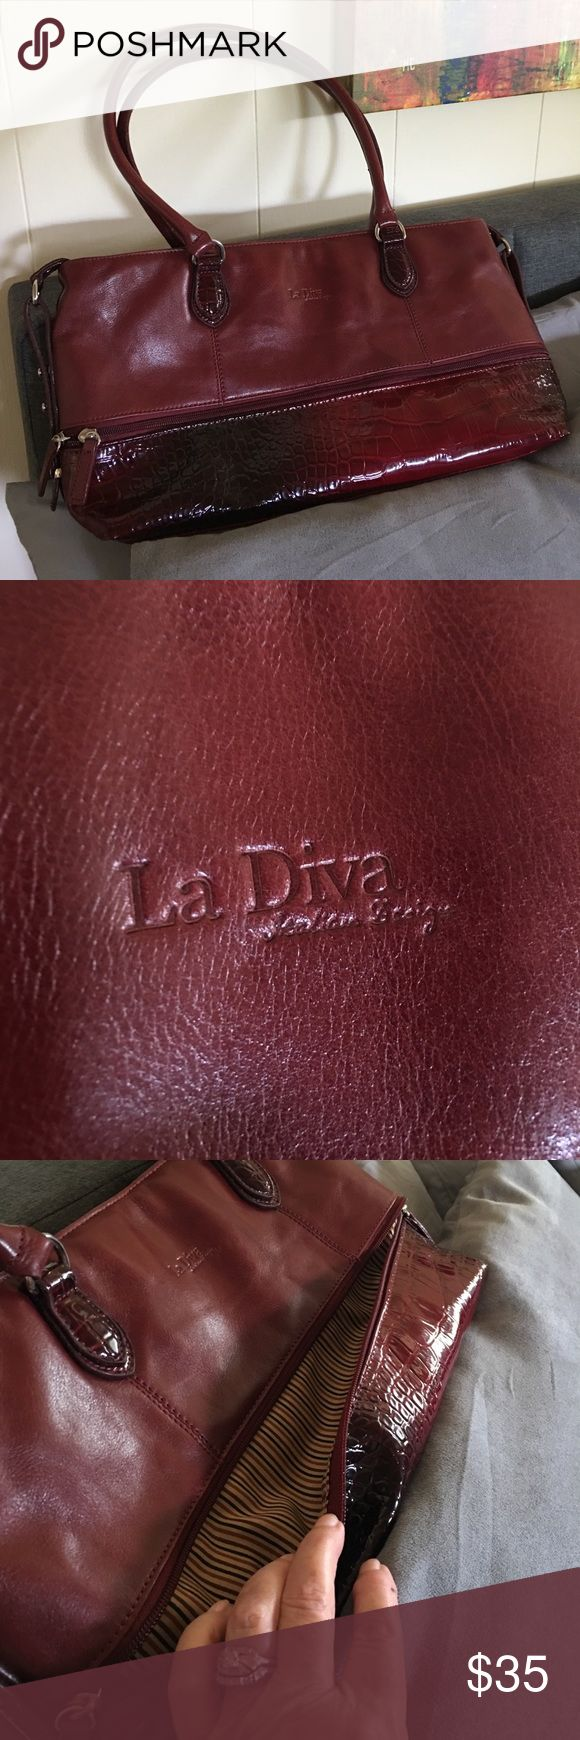 La Dive Italian design large purse/totebag/satchel La Diva Italian design large combination faux leather and vinyl.  Is gorgeous.  Worn once.  Has a built-in wallet and two very roomy pockets inside incuding a zipper pocket and a phone pocket.  Along the front of the purse toward the bottom is a zipper pocket the full length of the purse really nice.  Would really be perfect for a trip or any occasion.  Color is a reddish brown.  The dark spot on the bottom of the purse is part of the…